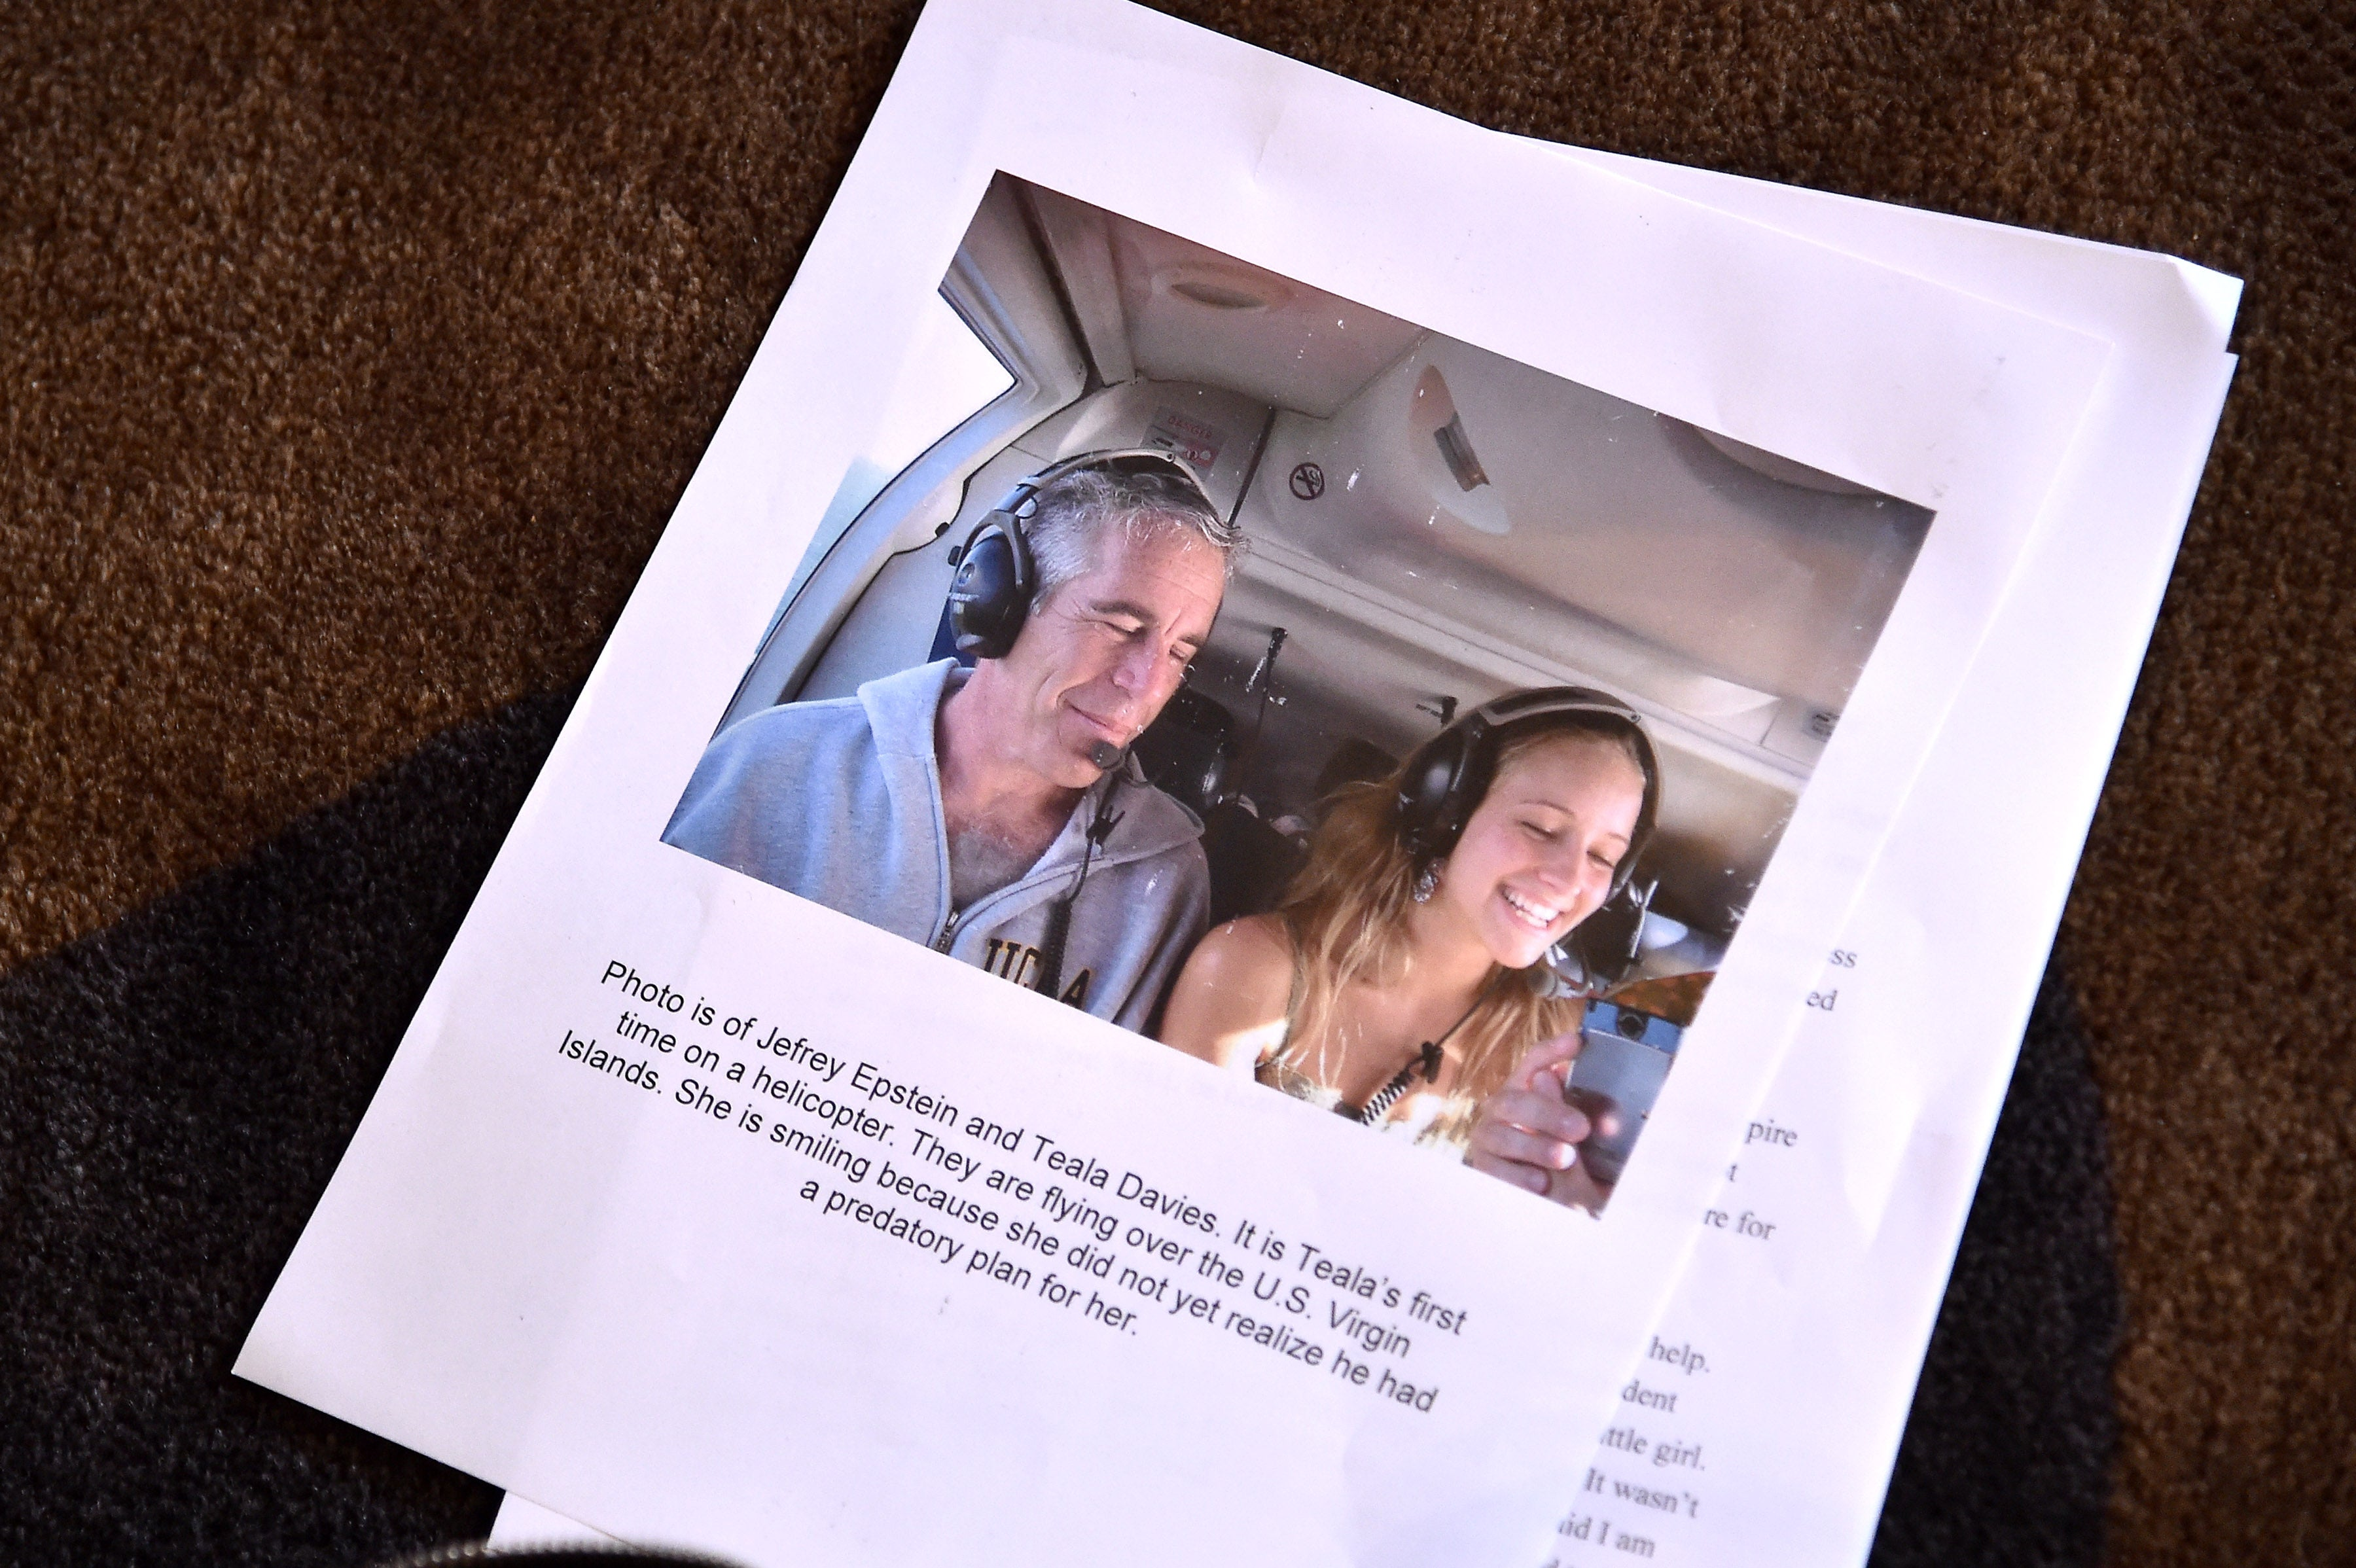 Photo of Jeffrey Epstein with a young woman. Epstein's estate is now being sued.